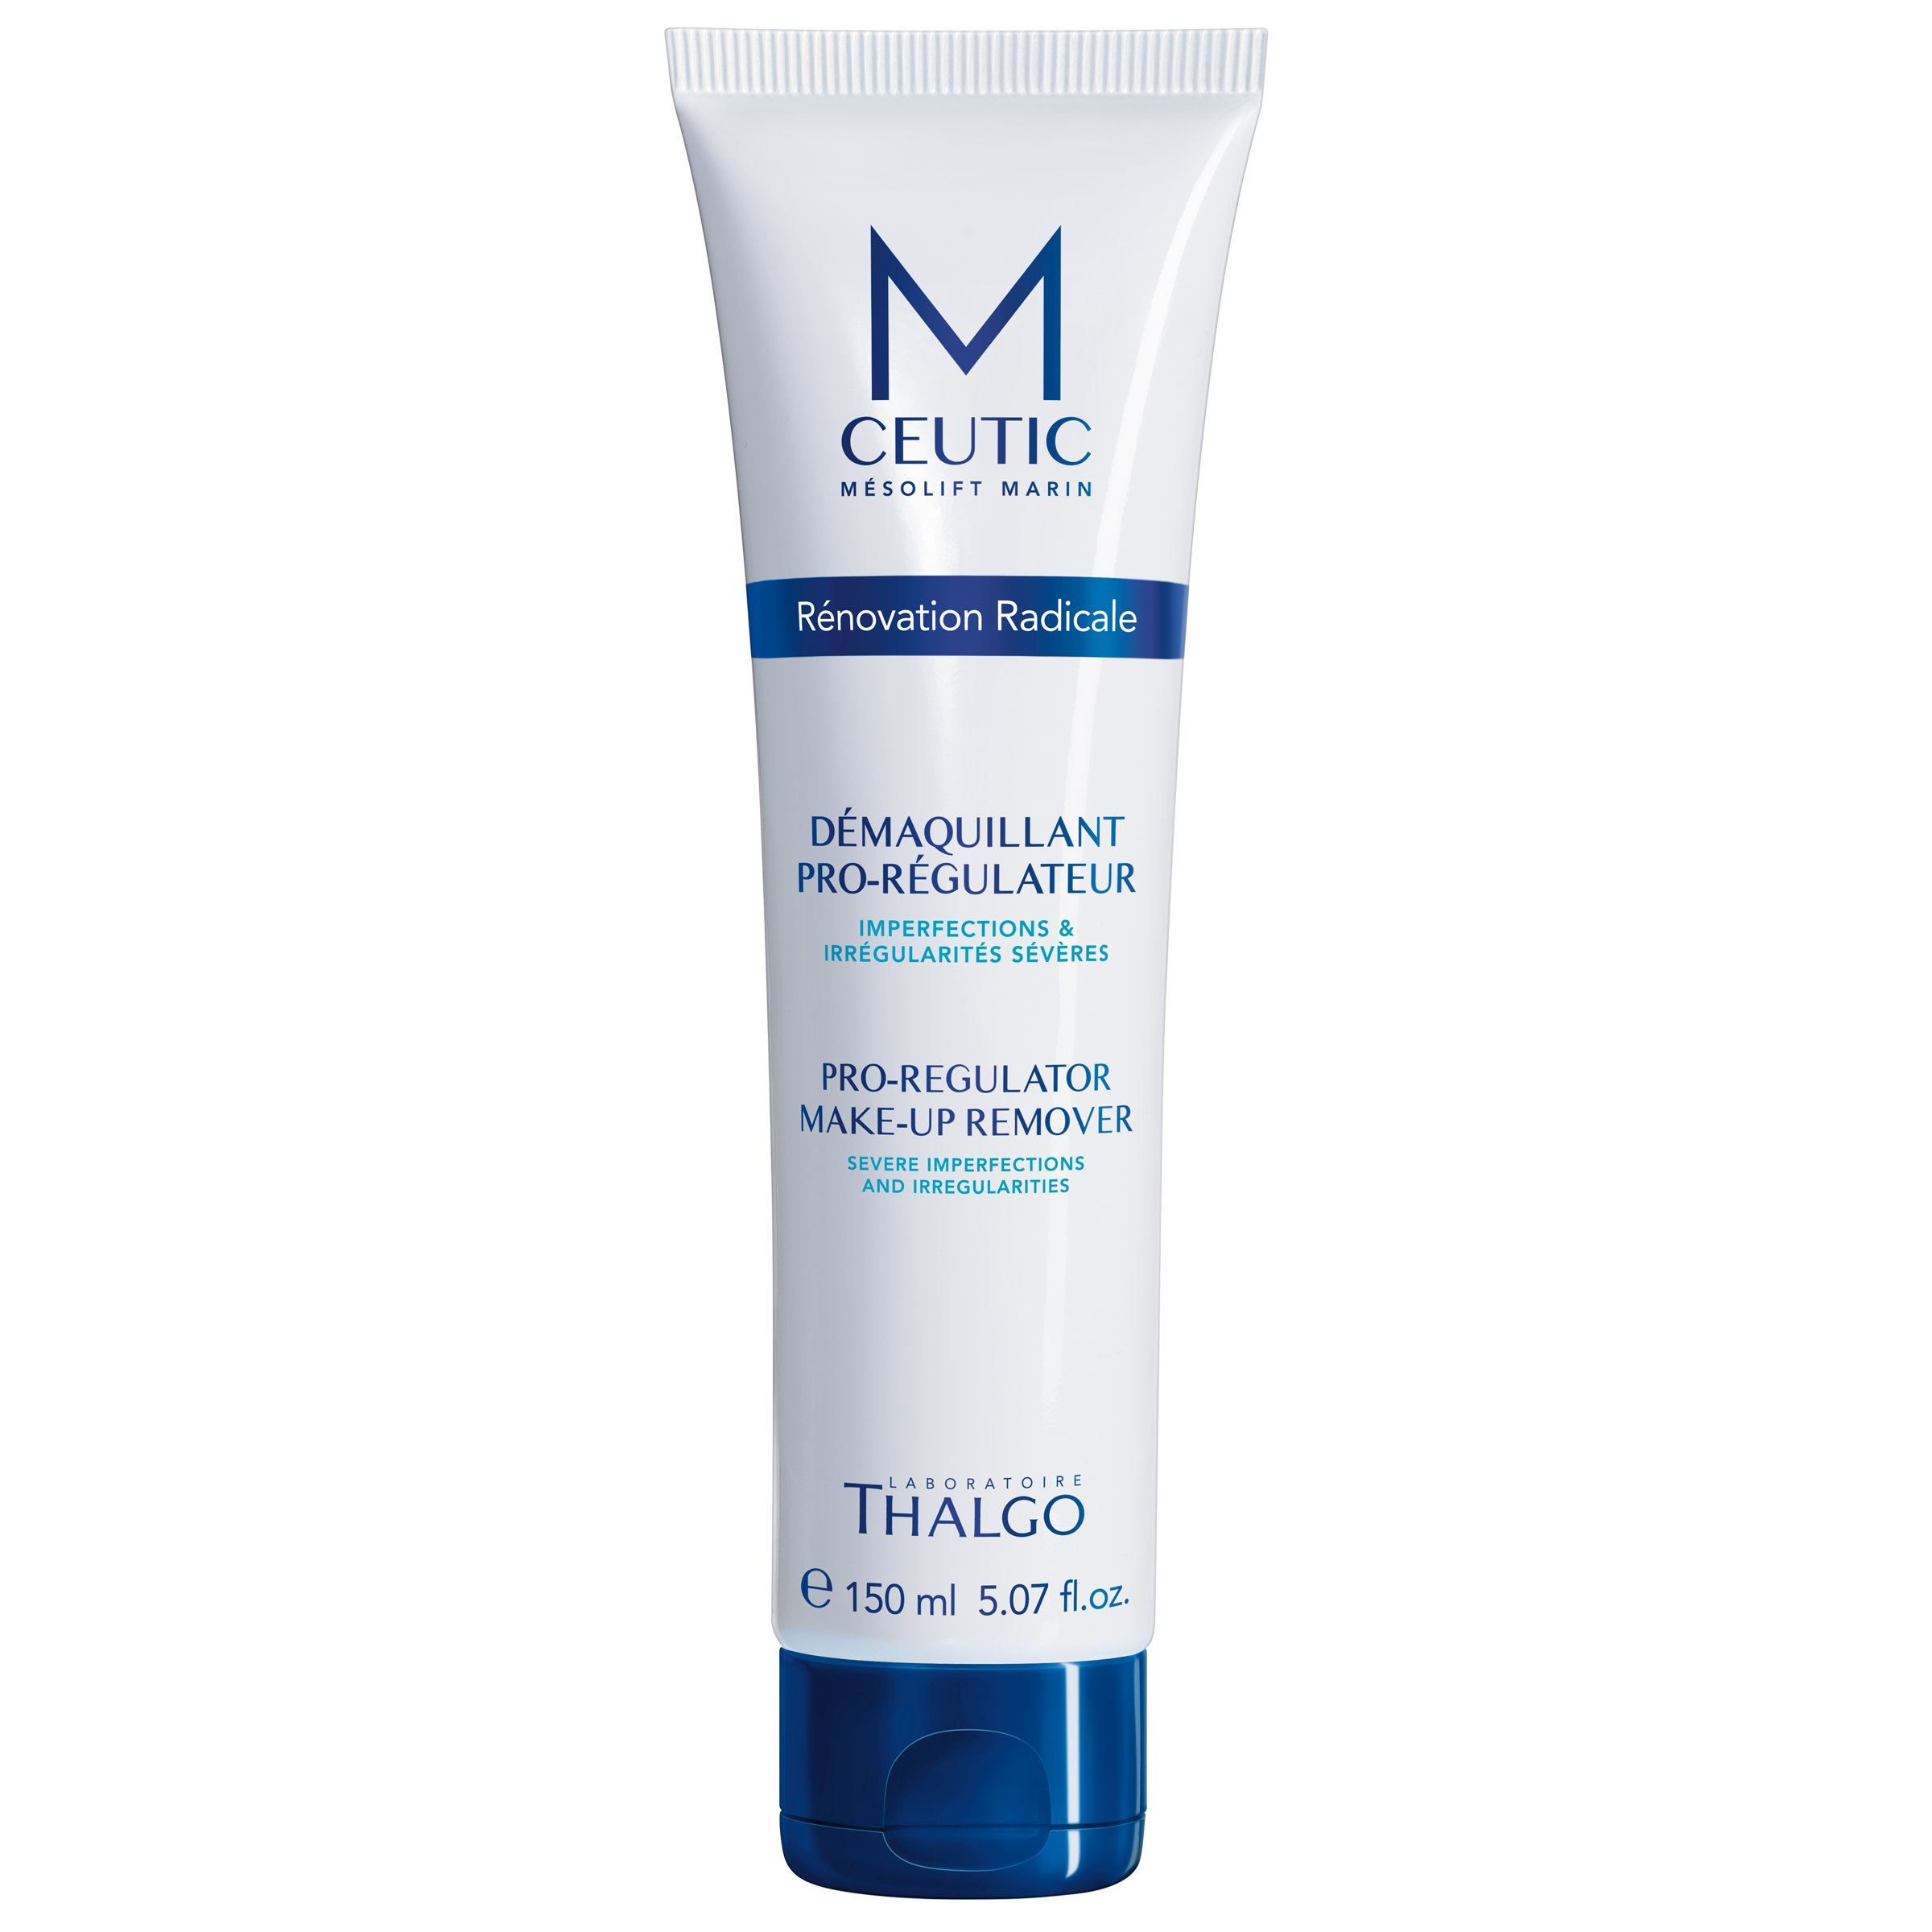 THALGO Mceutic Pro-Regulator Make-Up Remover, 5.07 oz by THALGO